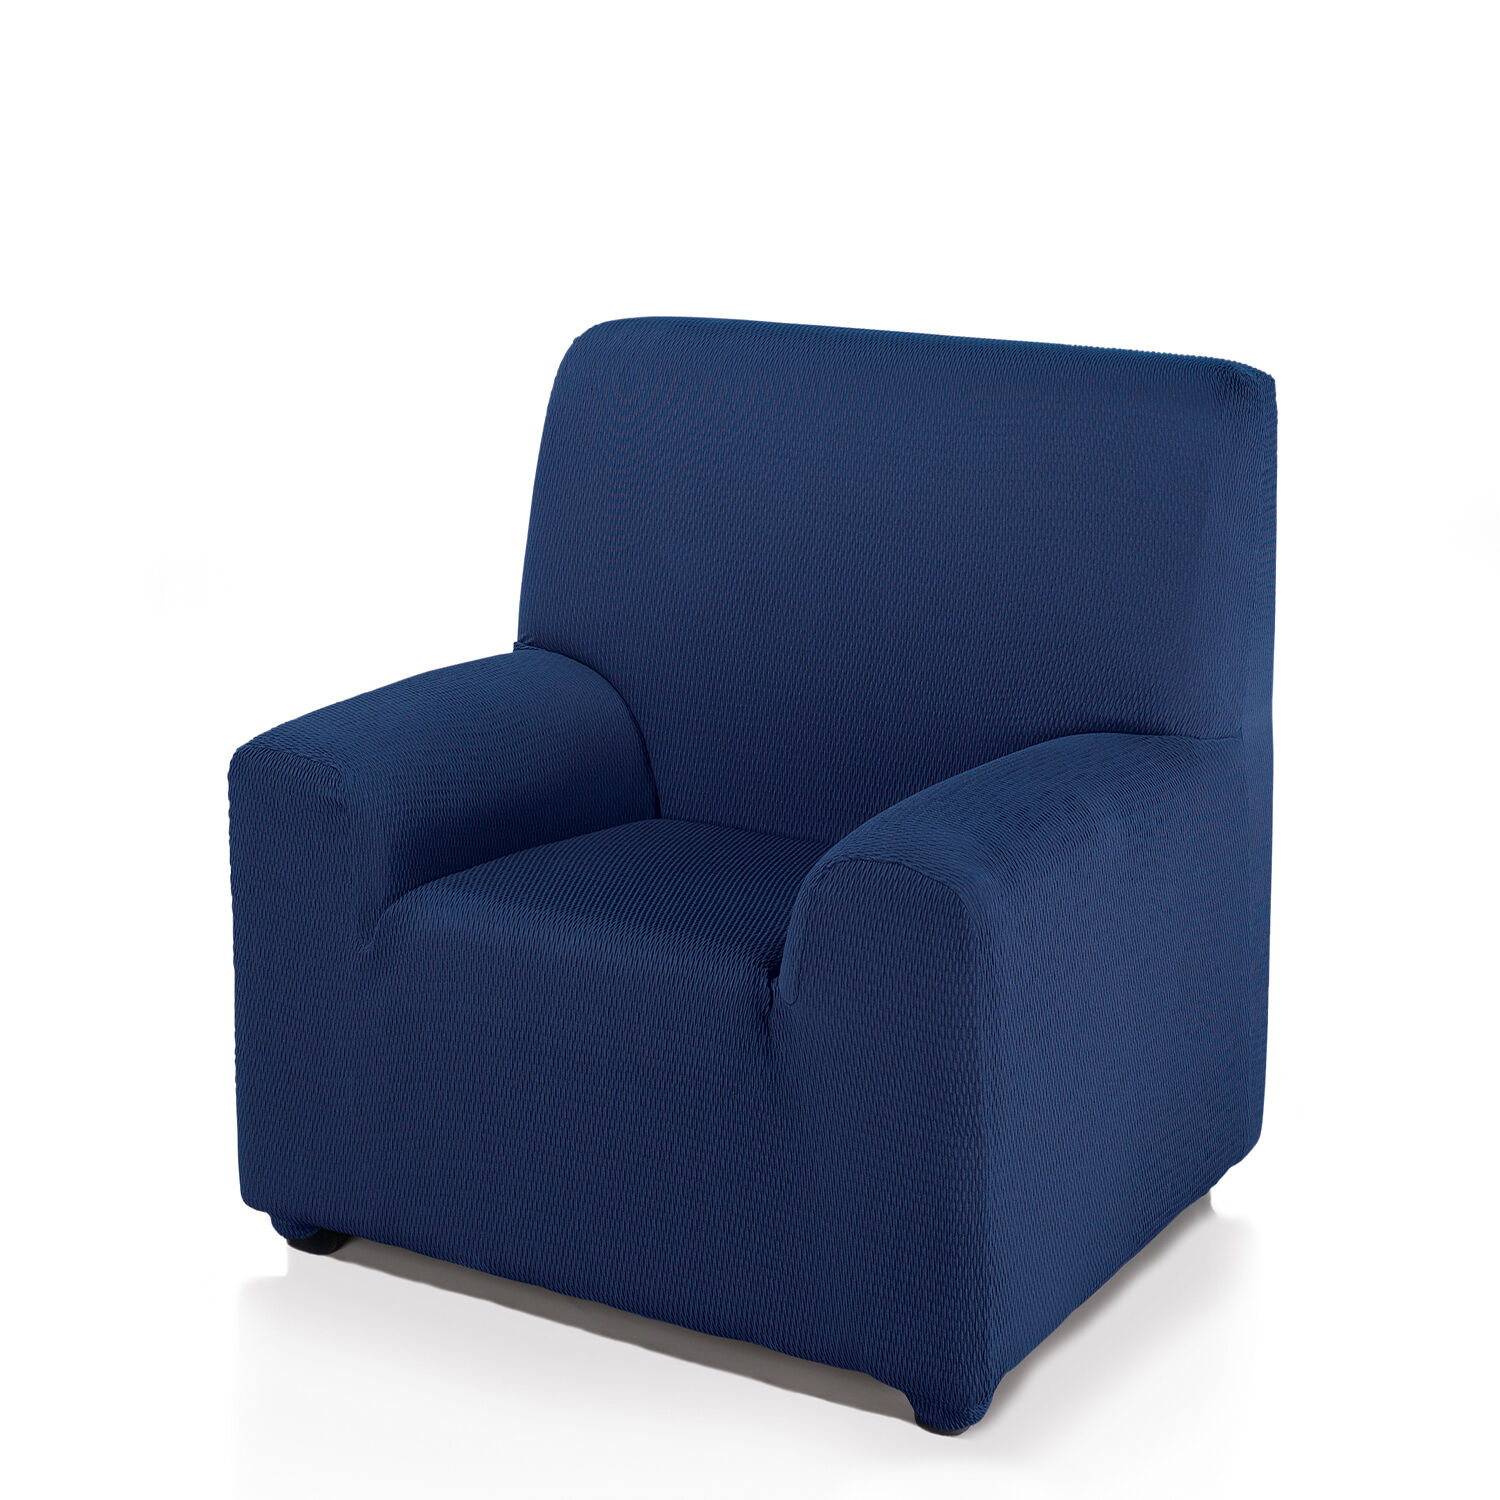 guineys dining chair covers blue metal chairs sofa home store more regal mills easystretch marine armchair cover